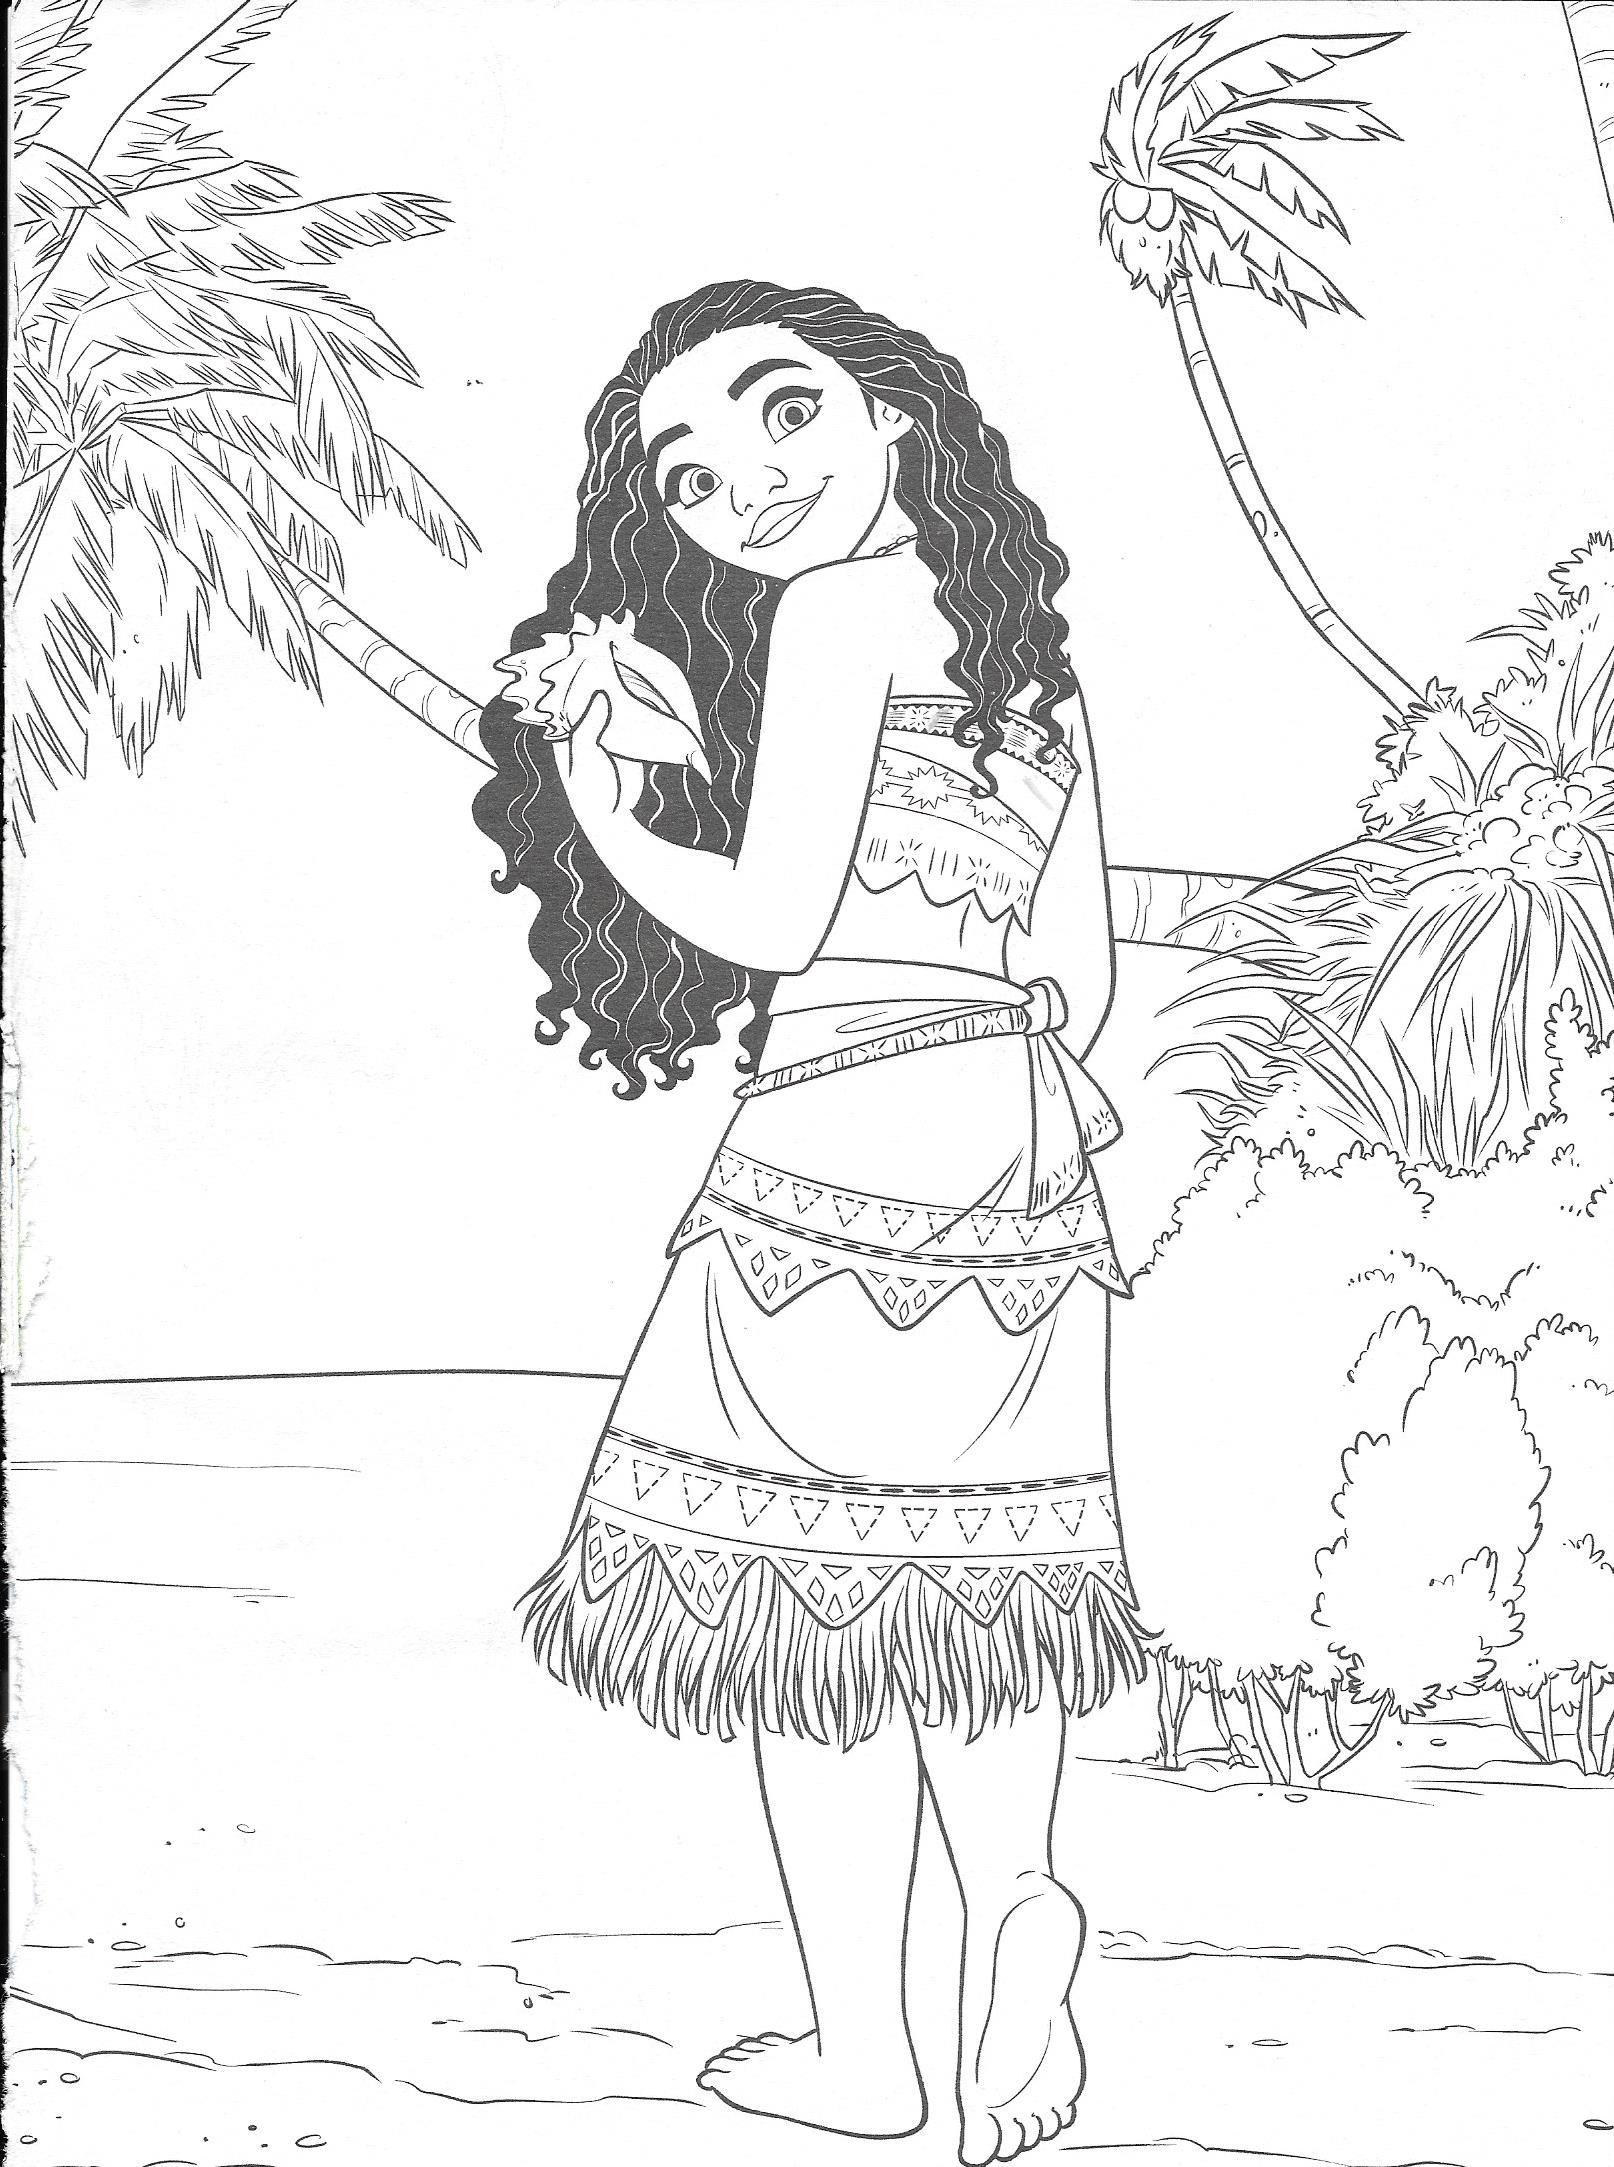 Pin By Safa On Coloring Pages Moana Coloring Disney Coloring Pages Disney Paintings